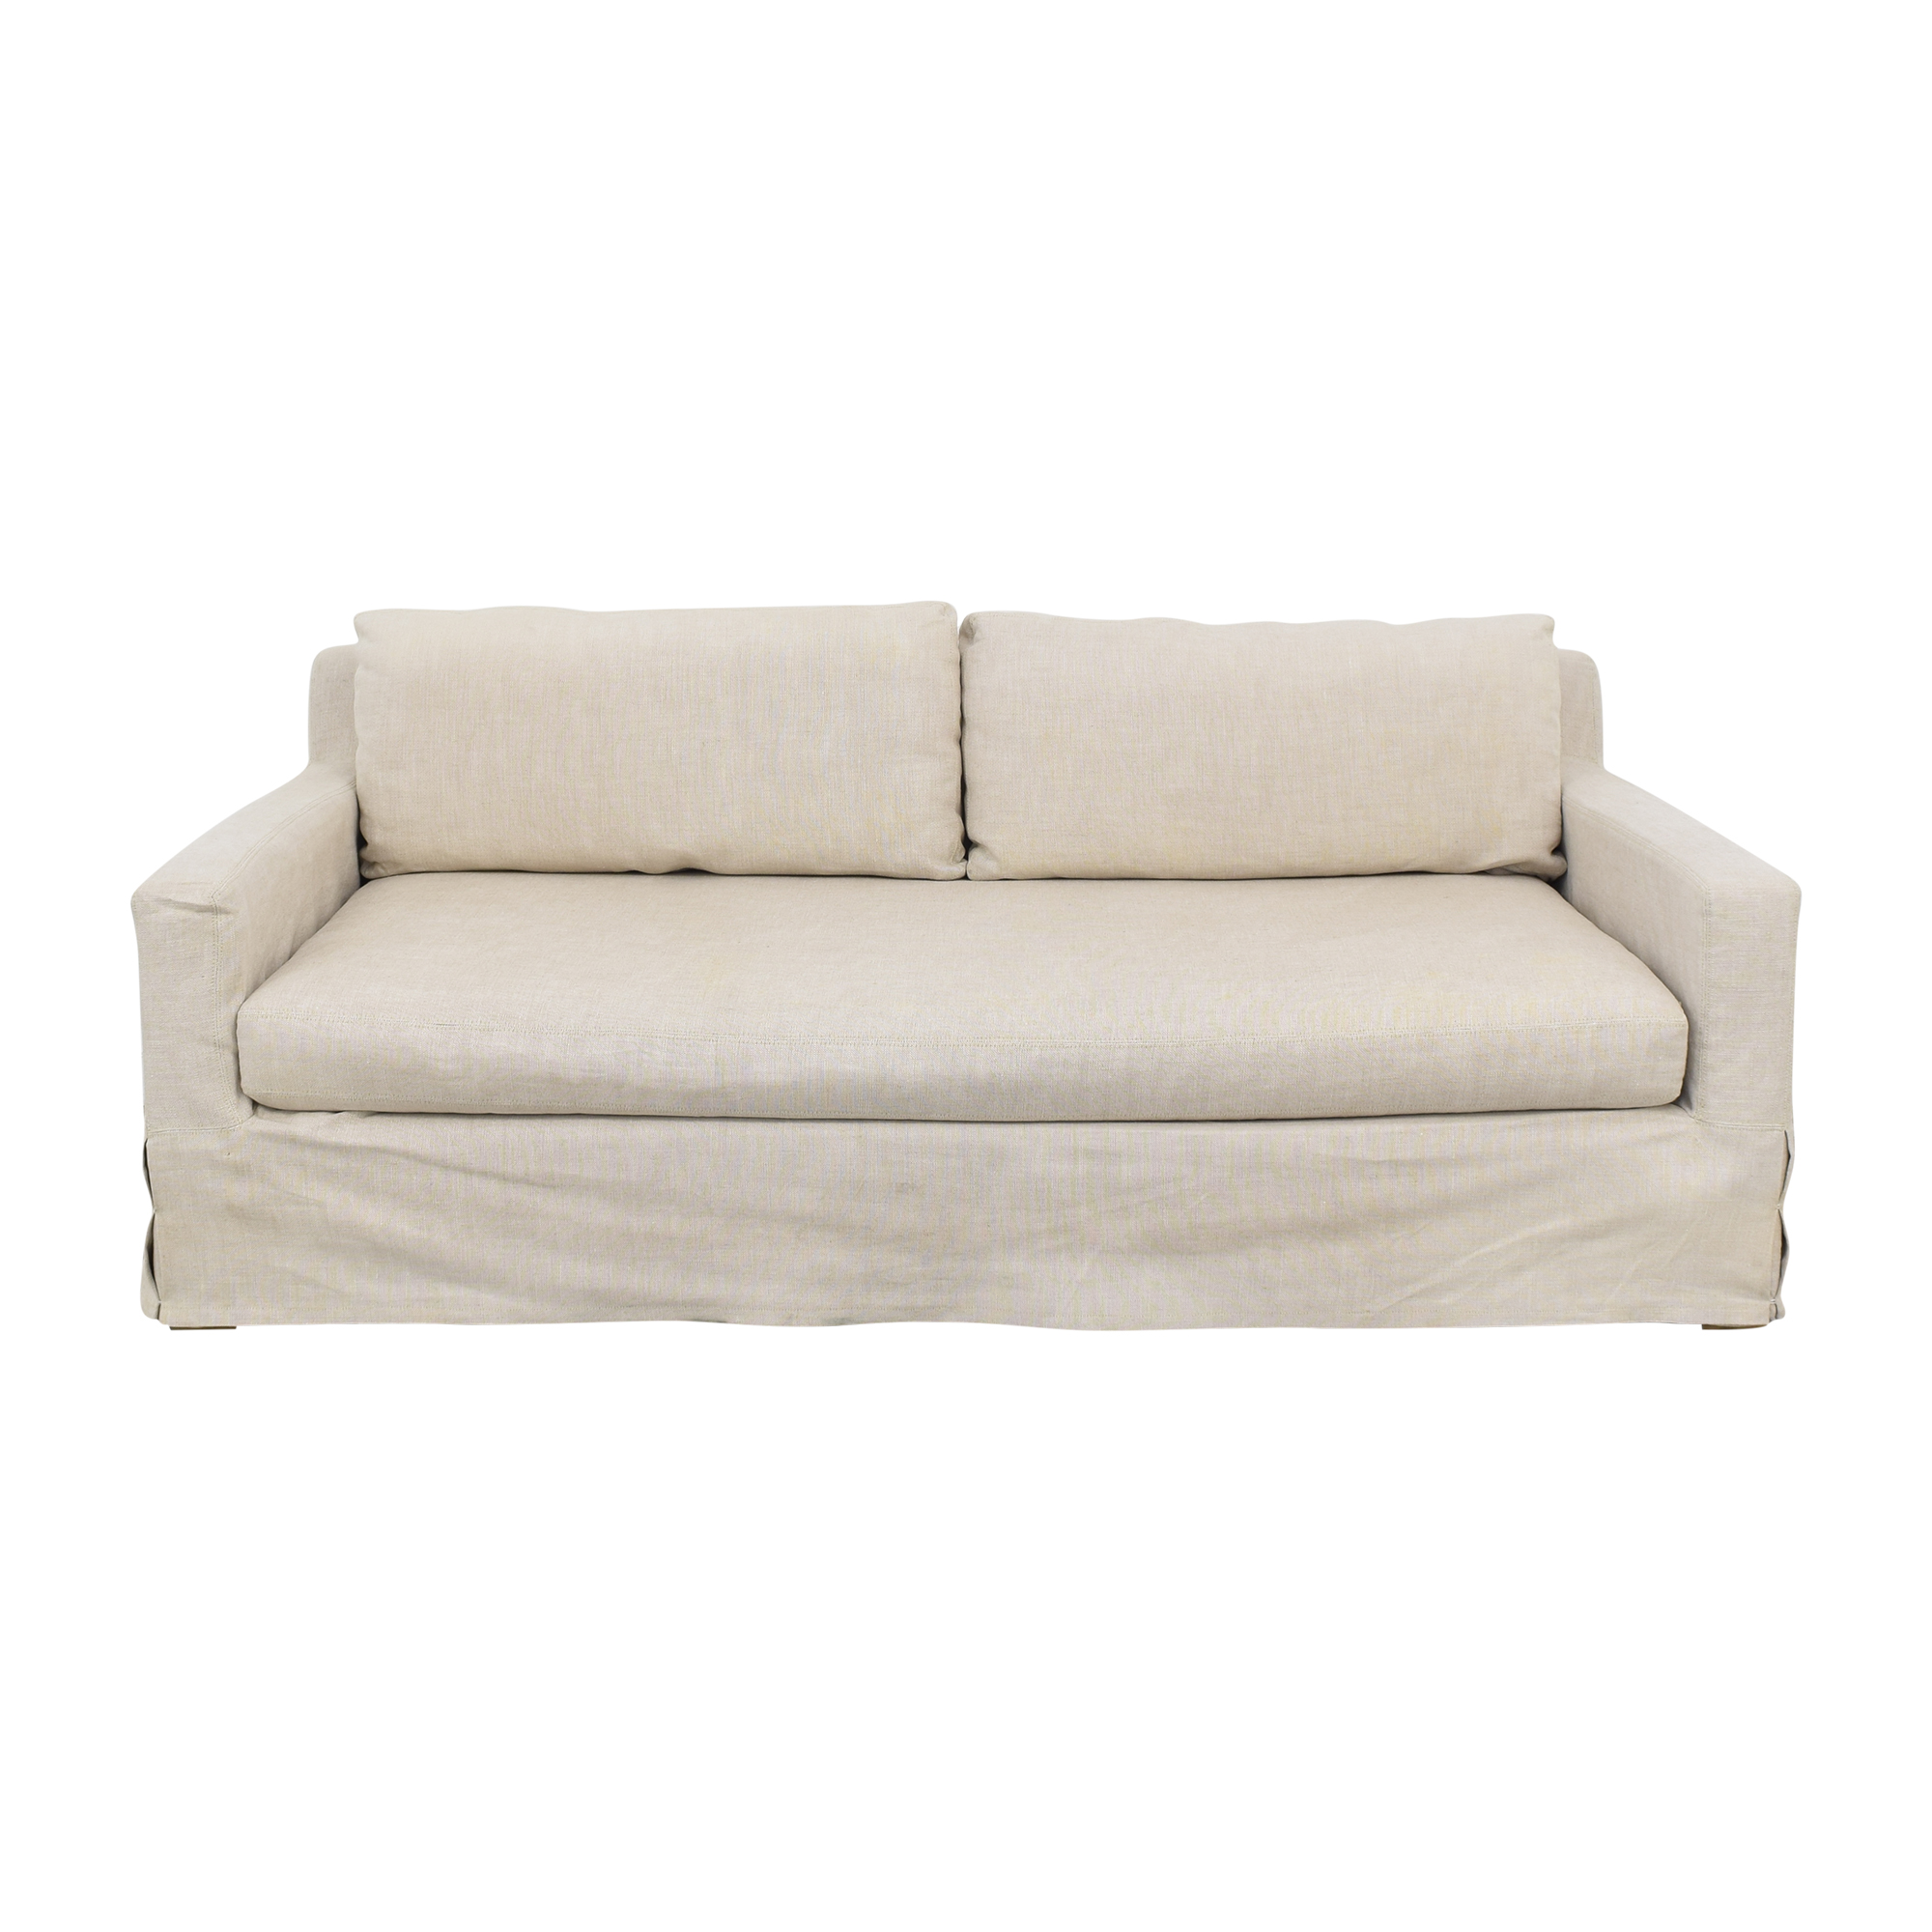 buy Restoration Hardware Belgian Track Arm Slipcover Sofa Restoration Hardware